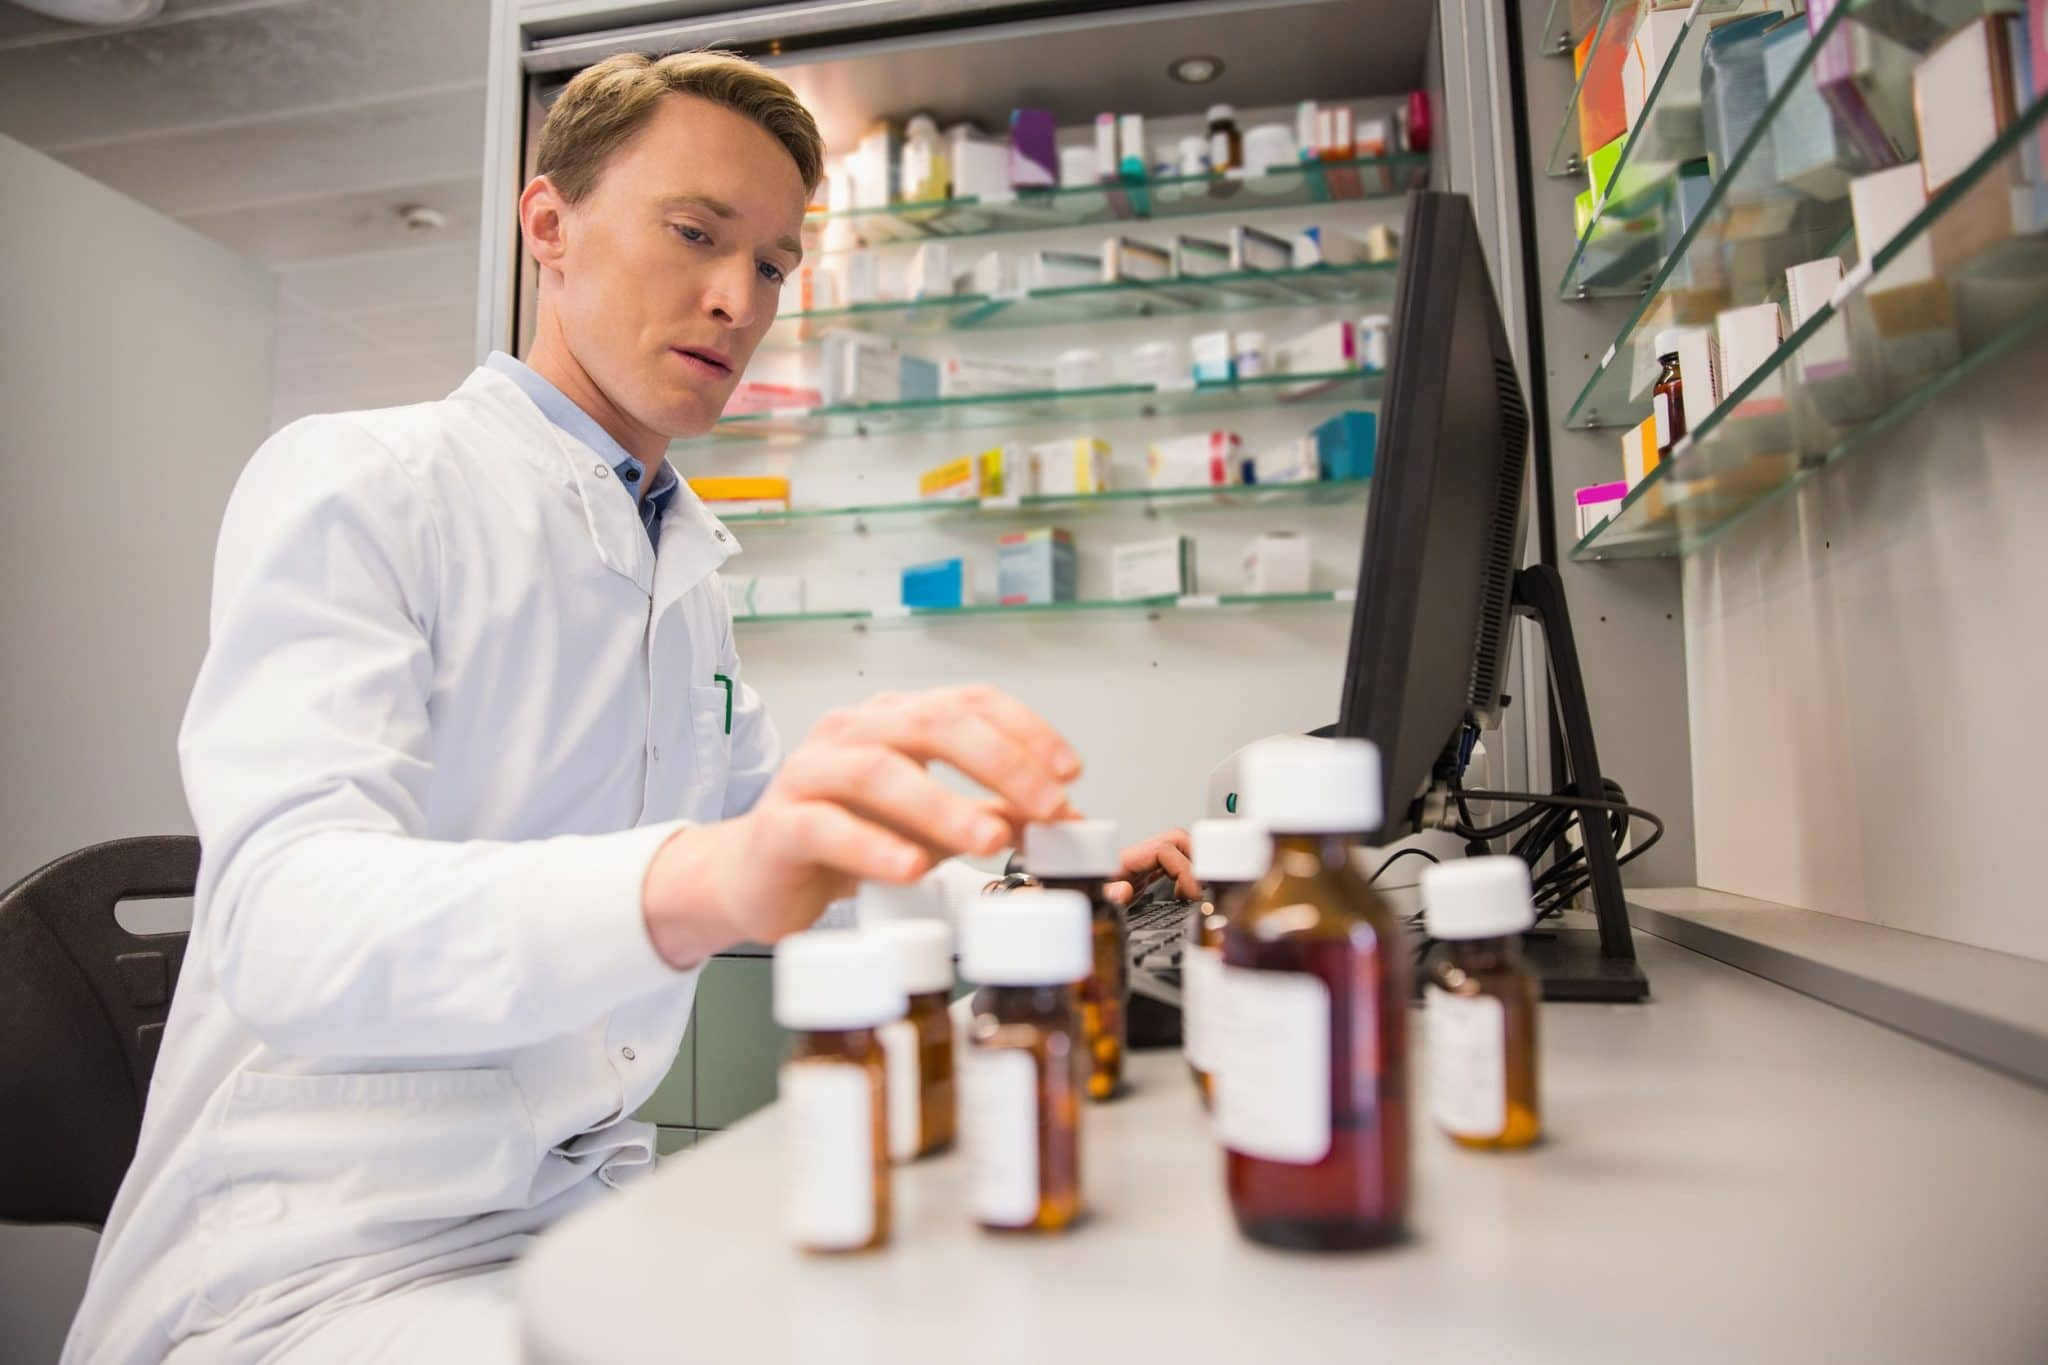 man with white lab coat counting bottles of medication at a compounding pharmacy